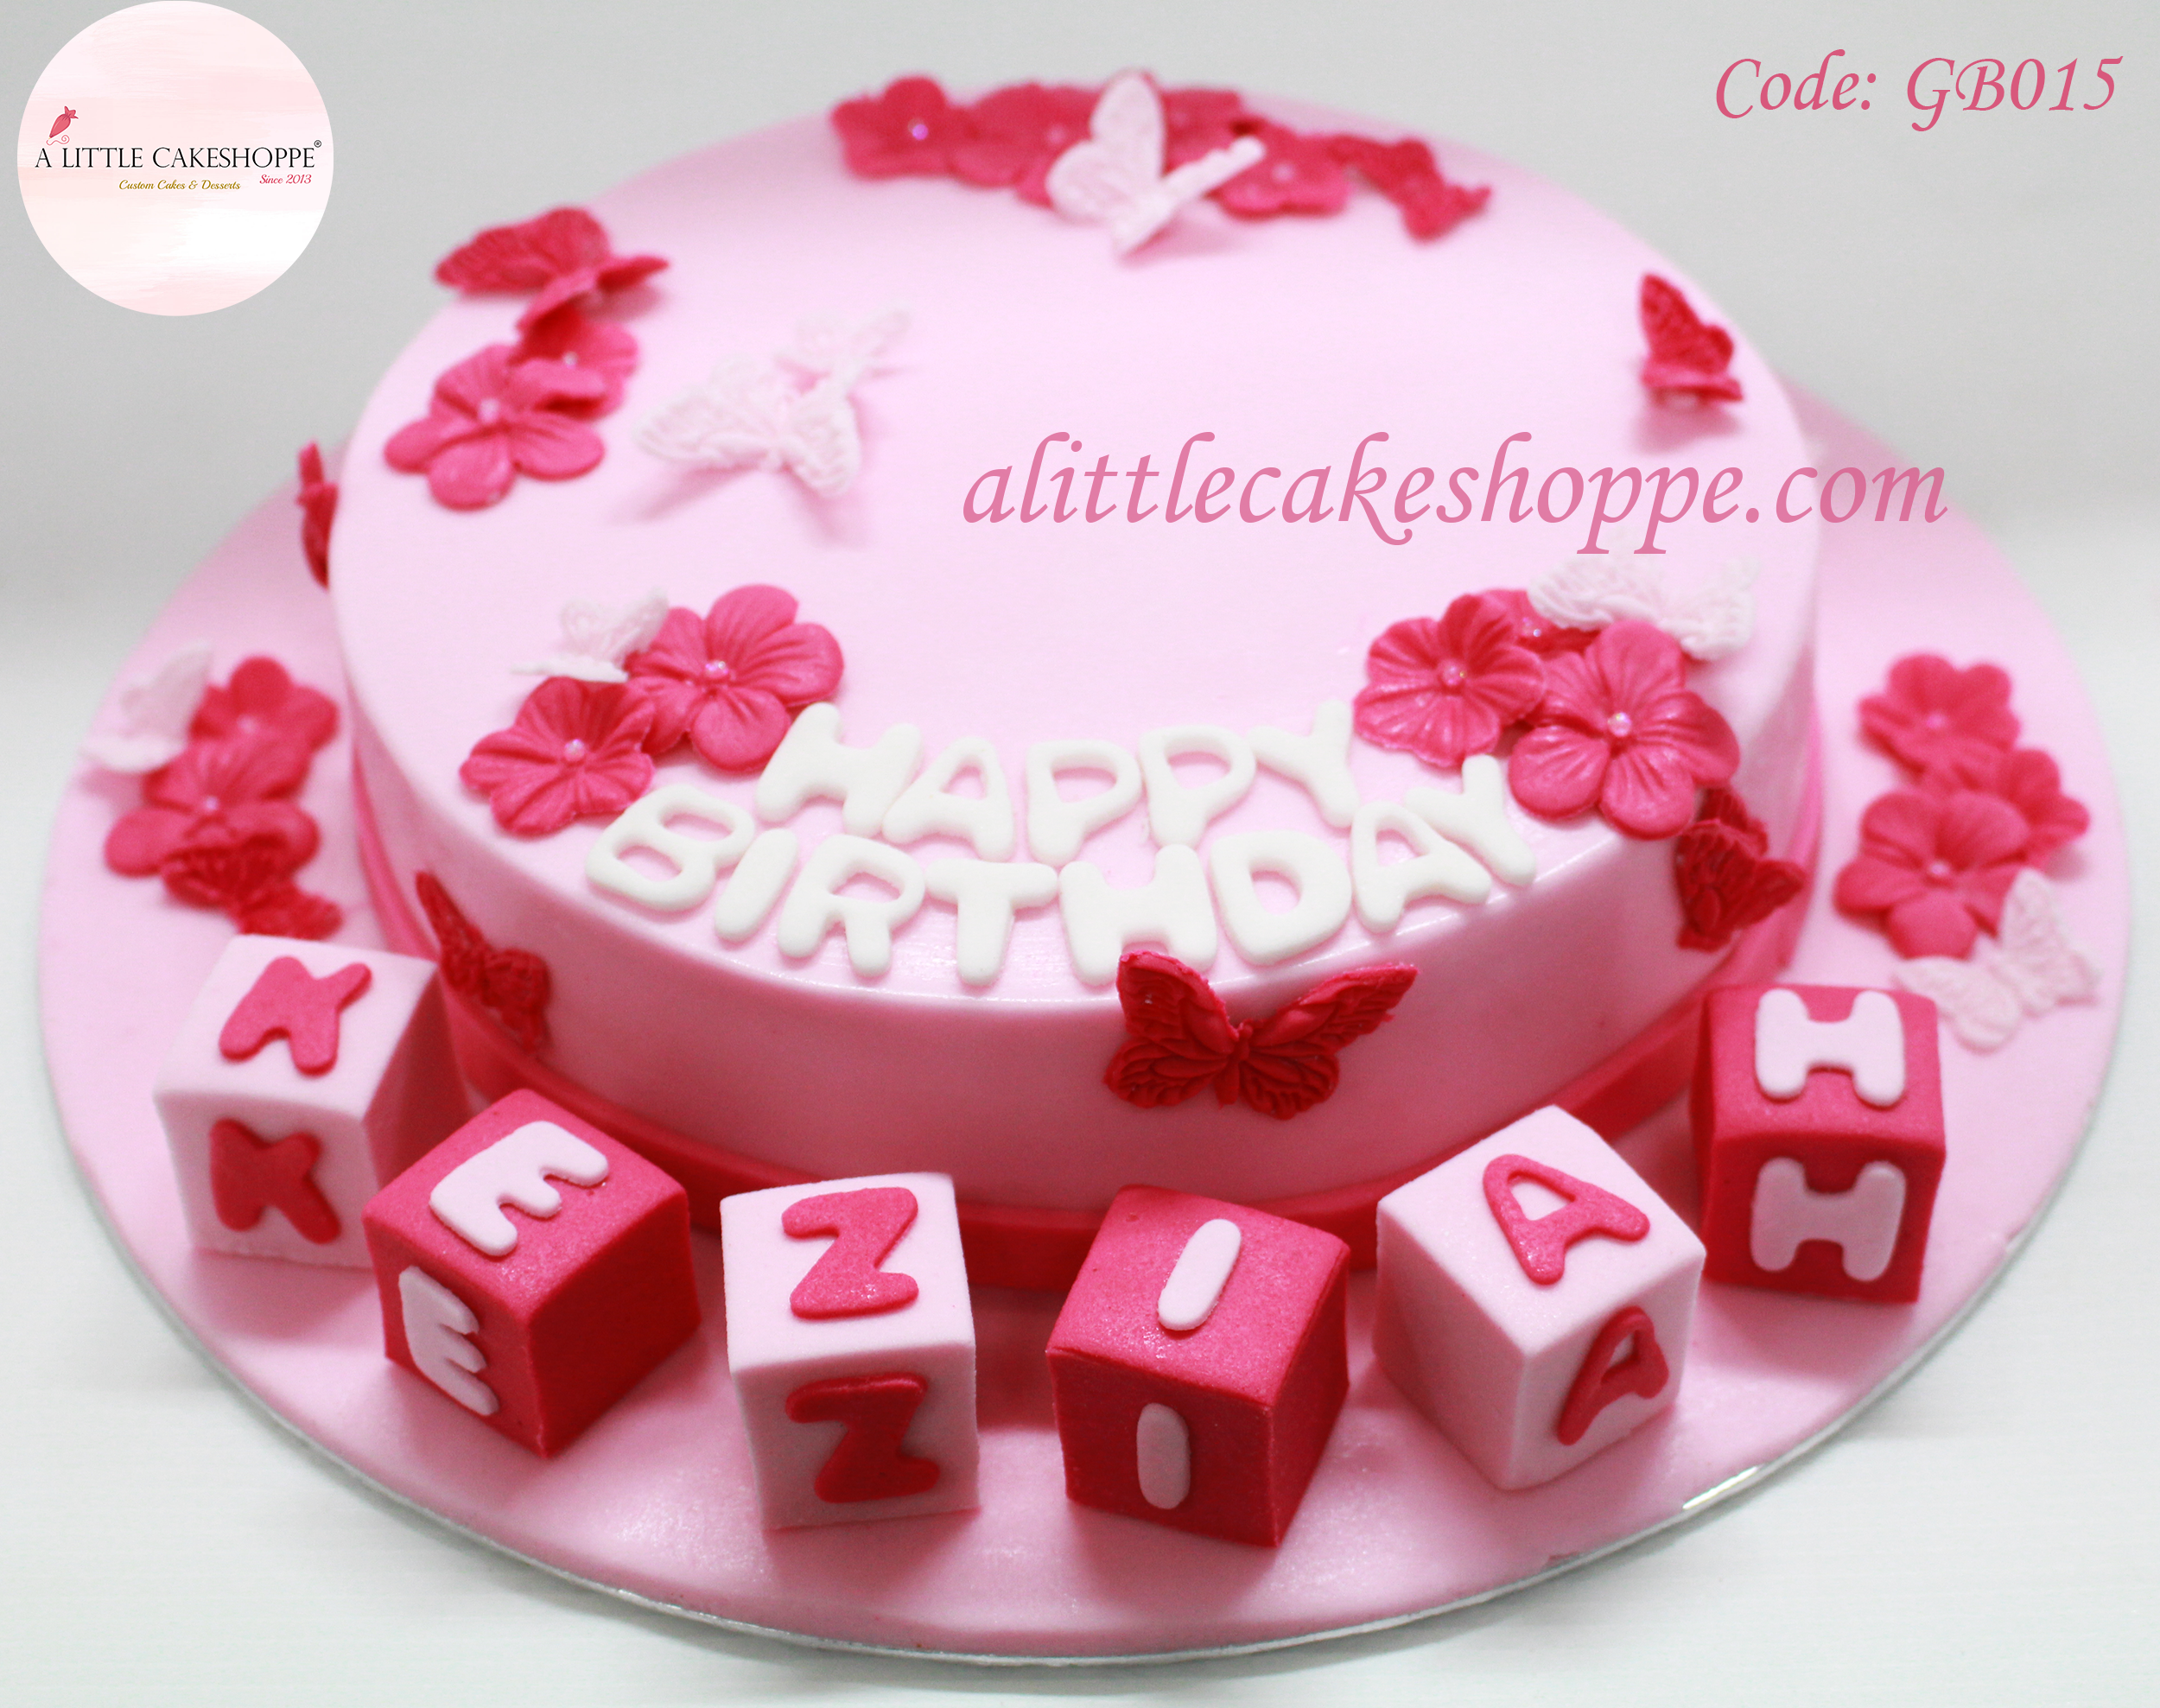 Best Customised Cake Shop Singapore custom cake 2D 3D birthday cake cupcakes desserts wedding corporate events anniversary 1st birthday 21st birthday fondant fresh cream buttercream cakes alittlecakeshoppe a little cake shoppe compliments review singapore bakers SG cake shop cakeshop ah beng who bakes butterfly